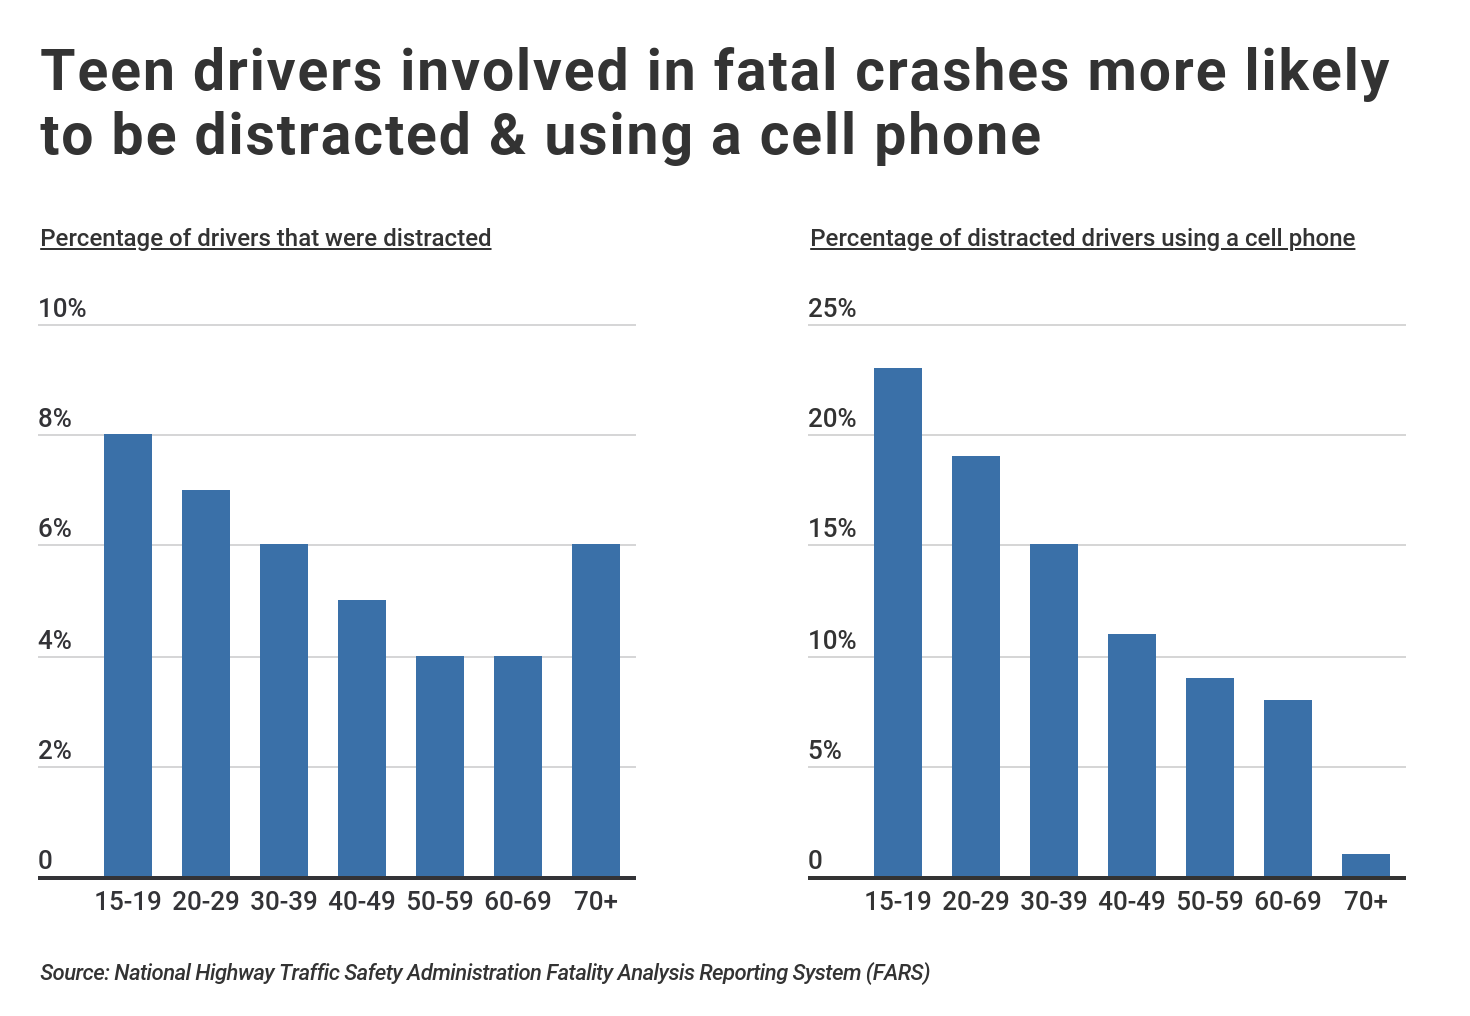 Bar Graphs Showing Likelihood of Teen Drivers Being Distracted in Fatal Car Crashes